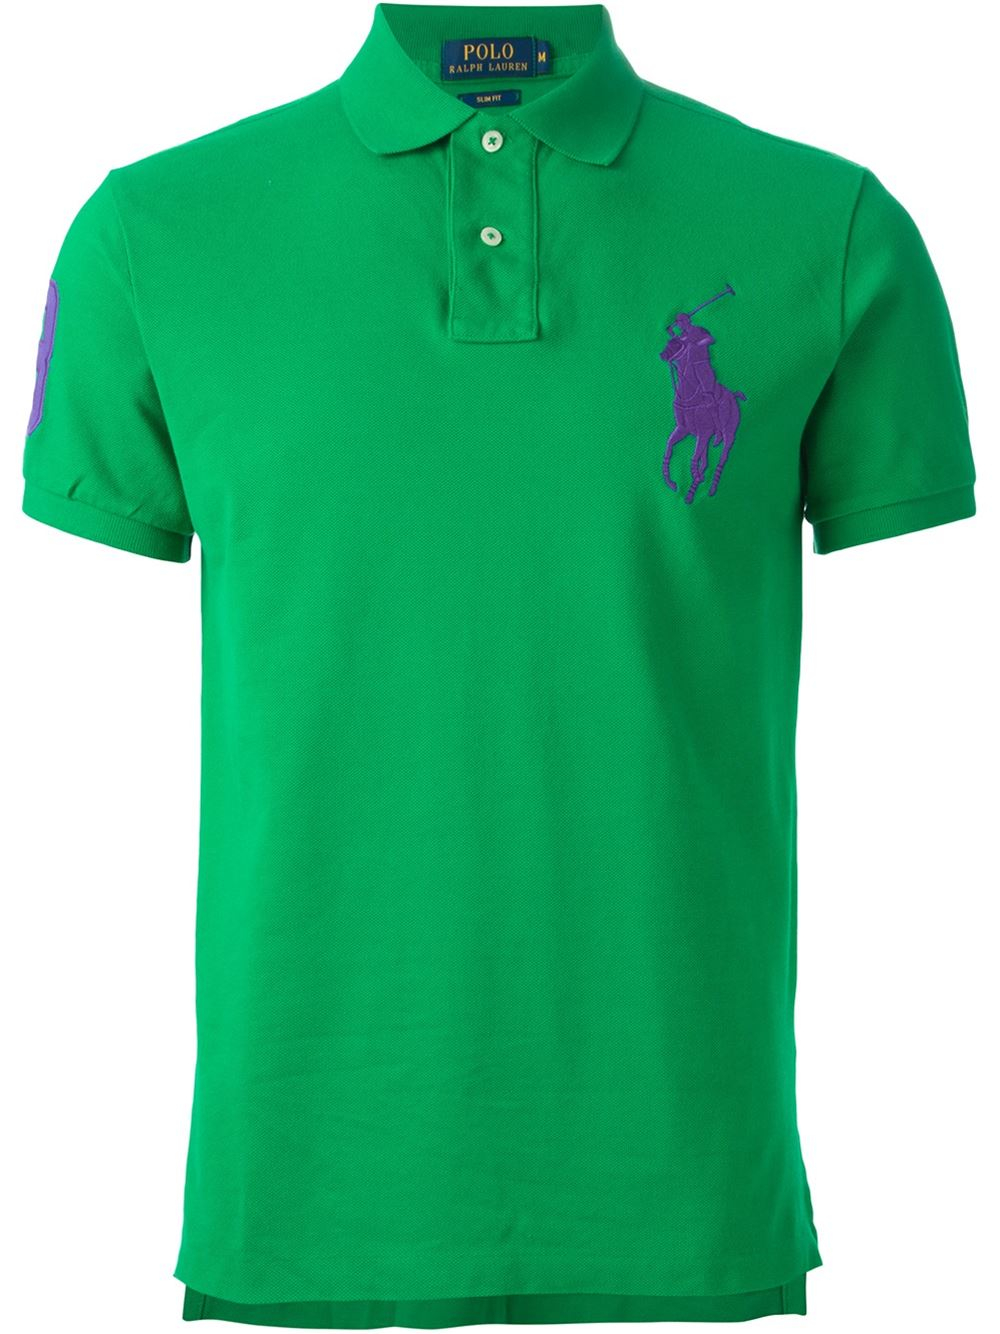 Polo ralph lauren logo embroidered polo shirt in green for for Polo shirts with logos